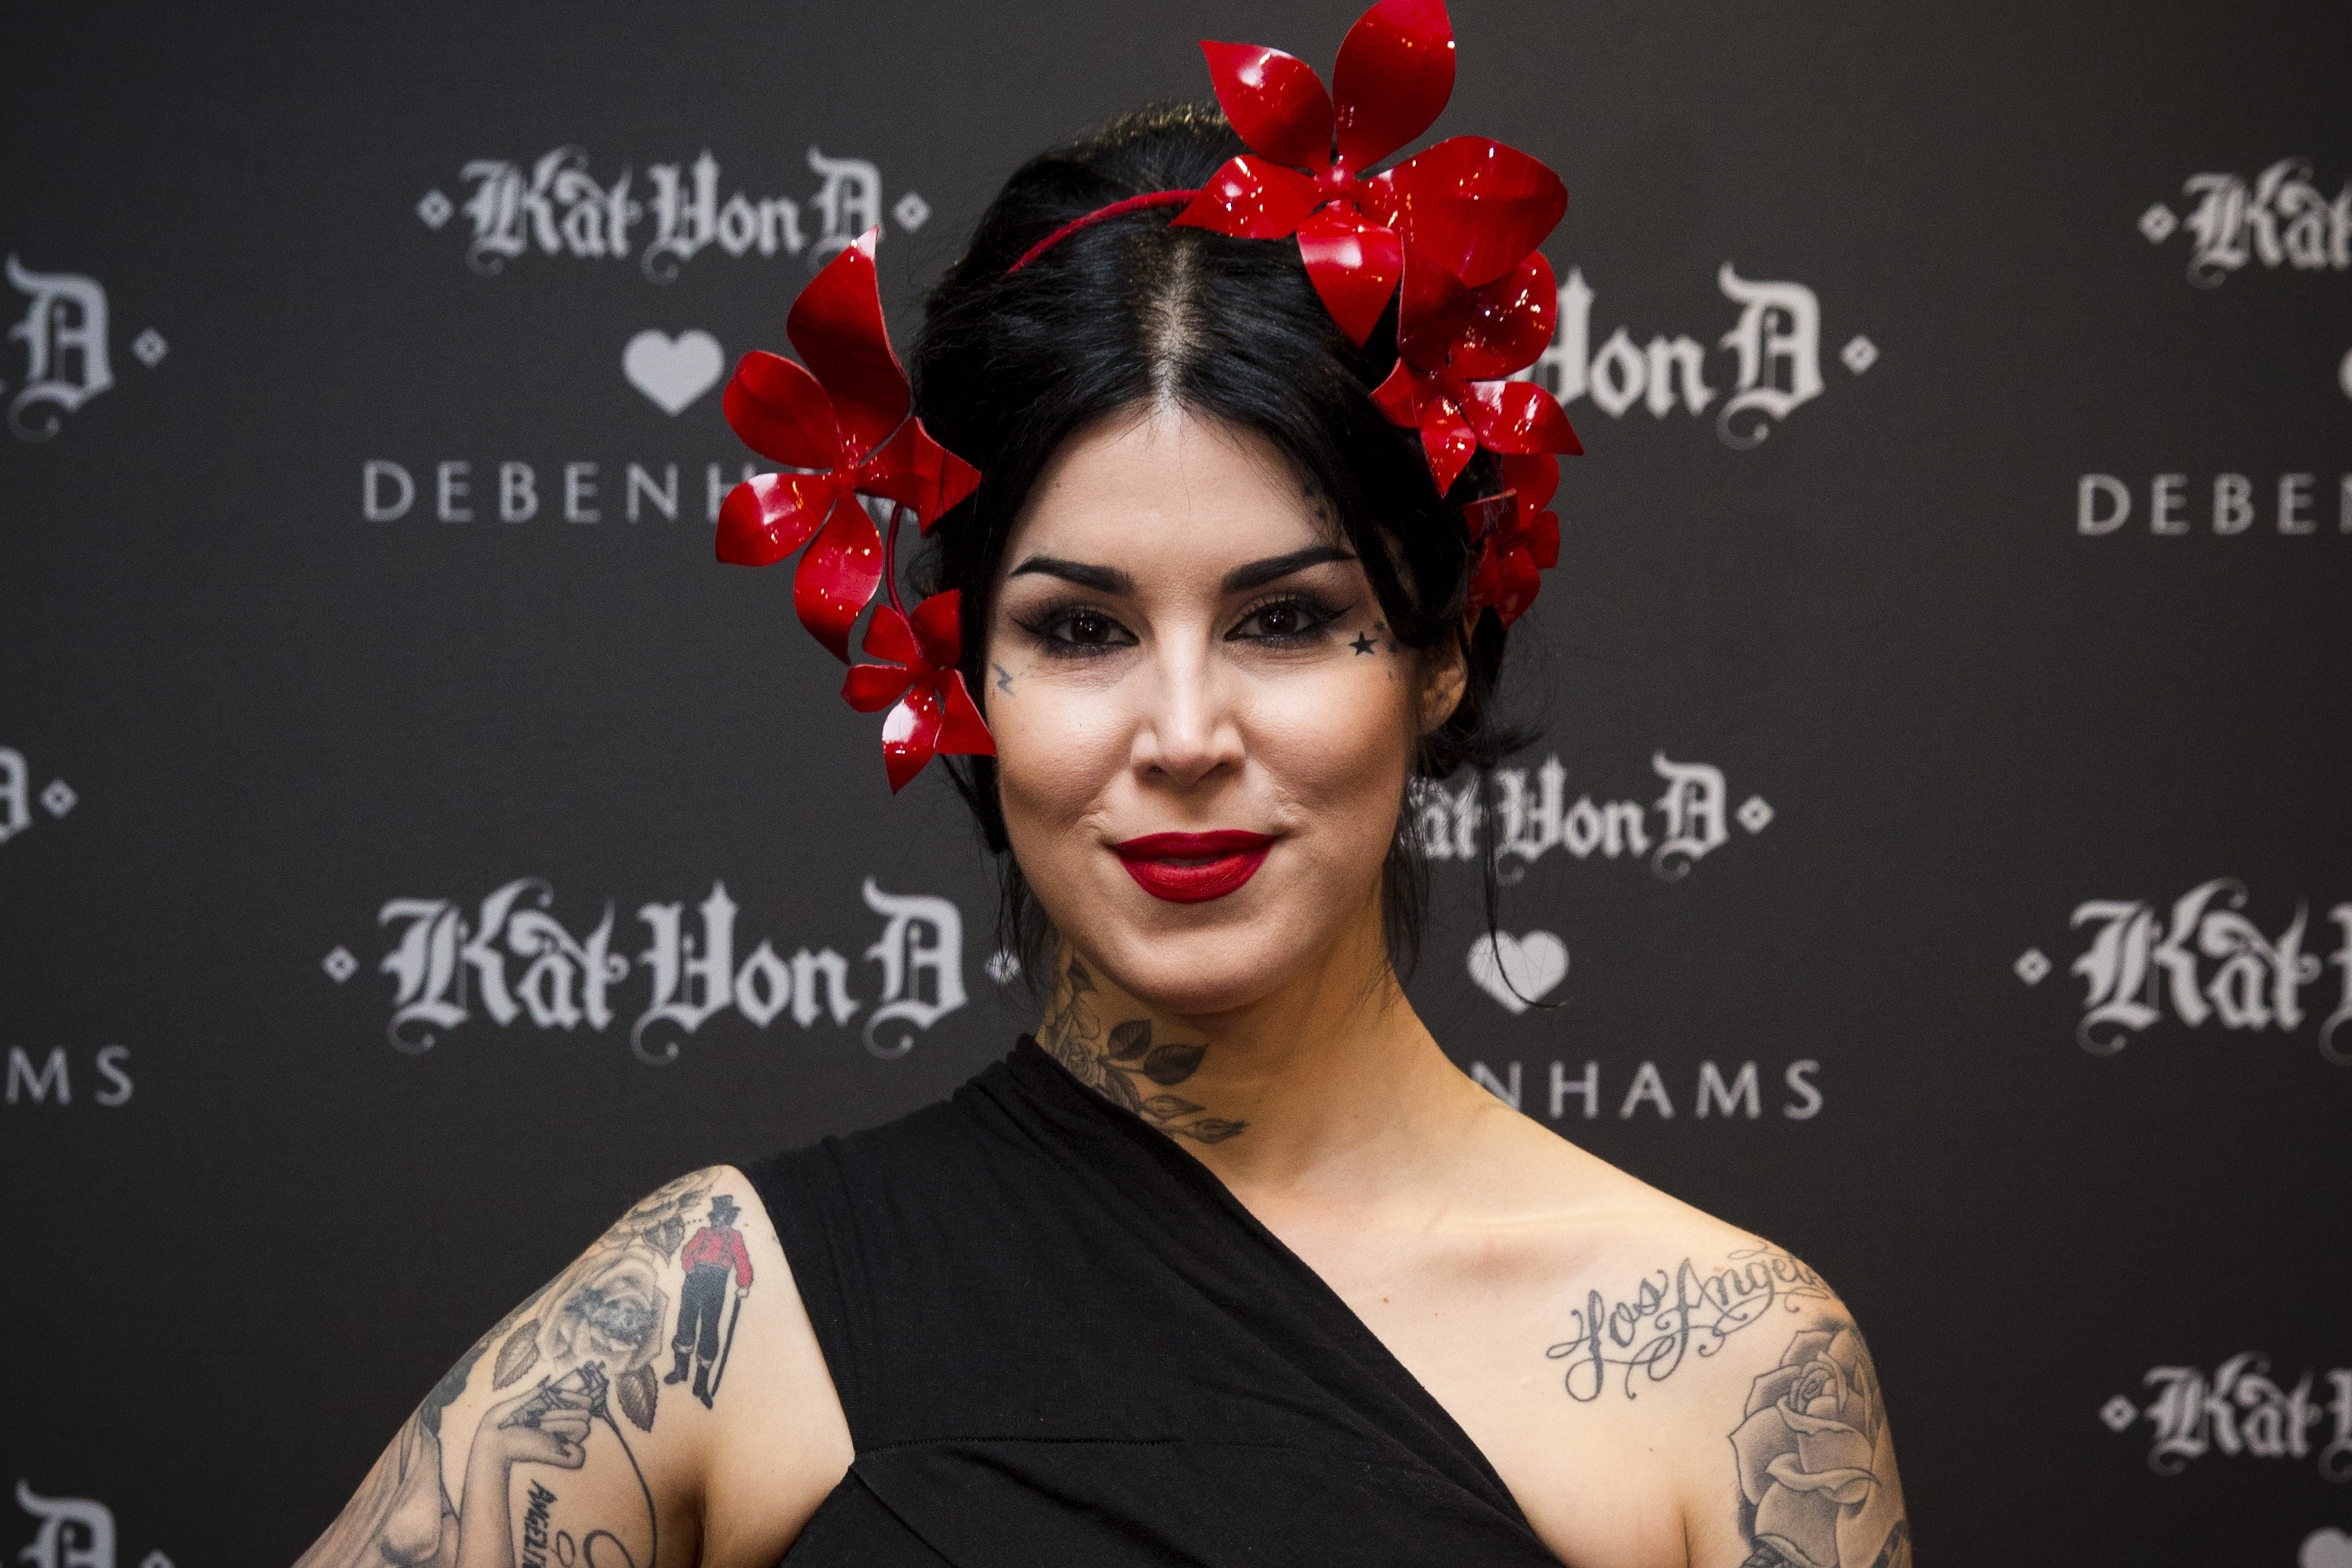 Kat Von D AB247 Event Transportation 001